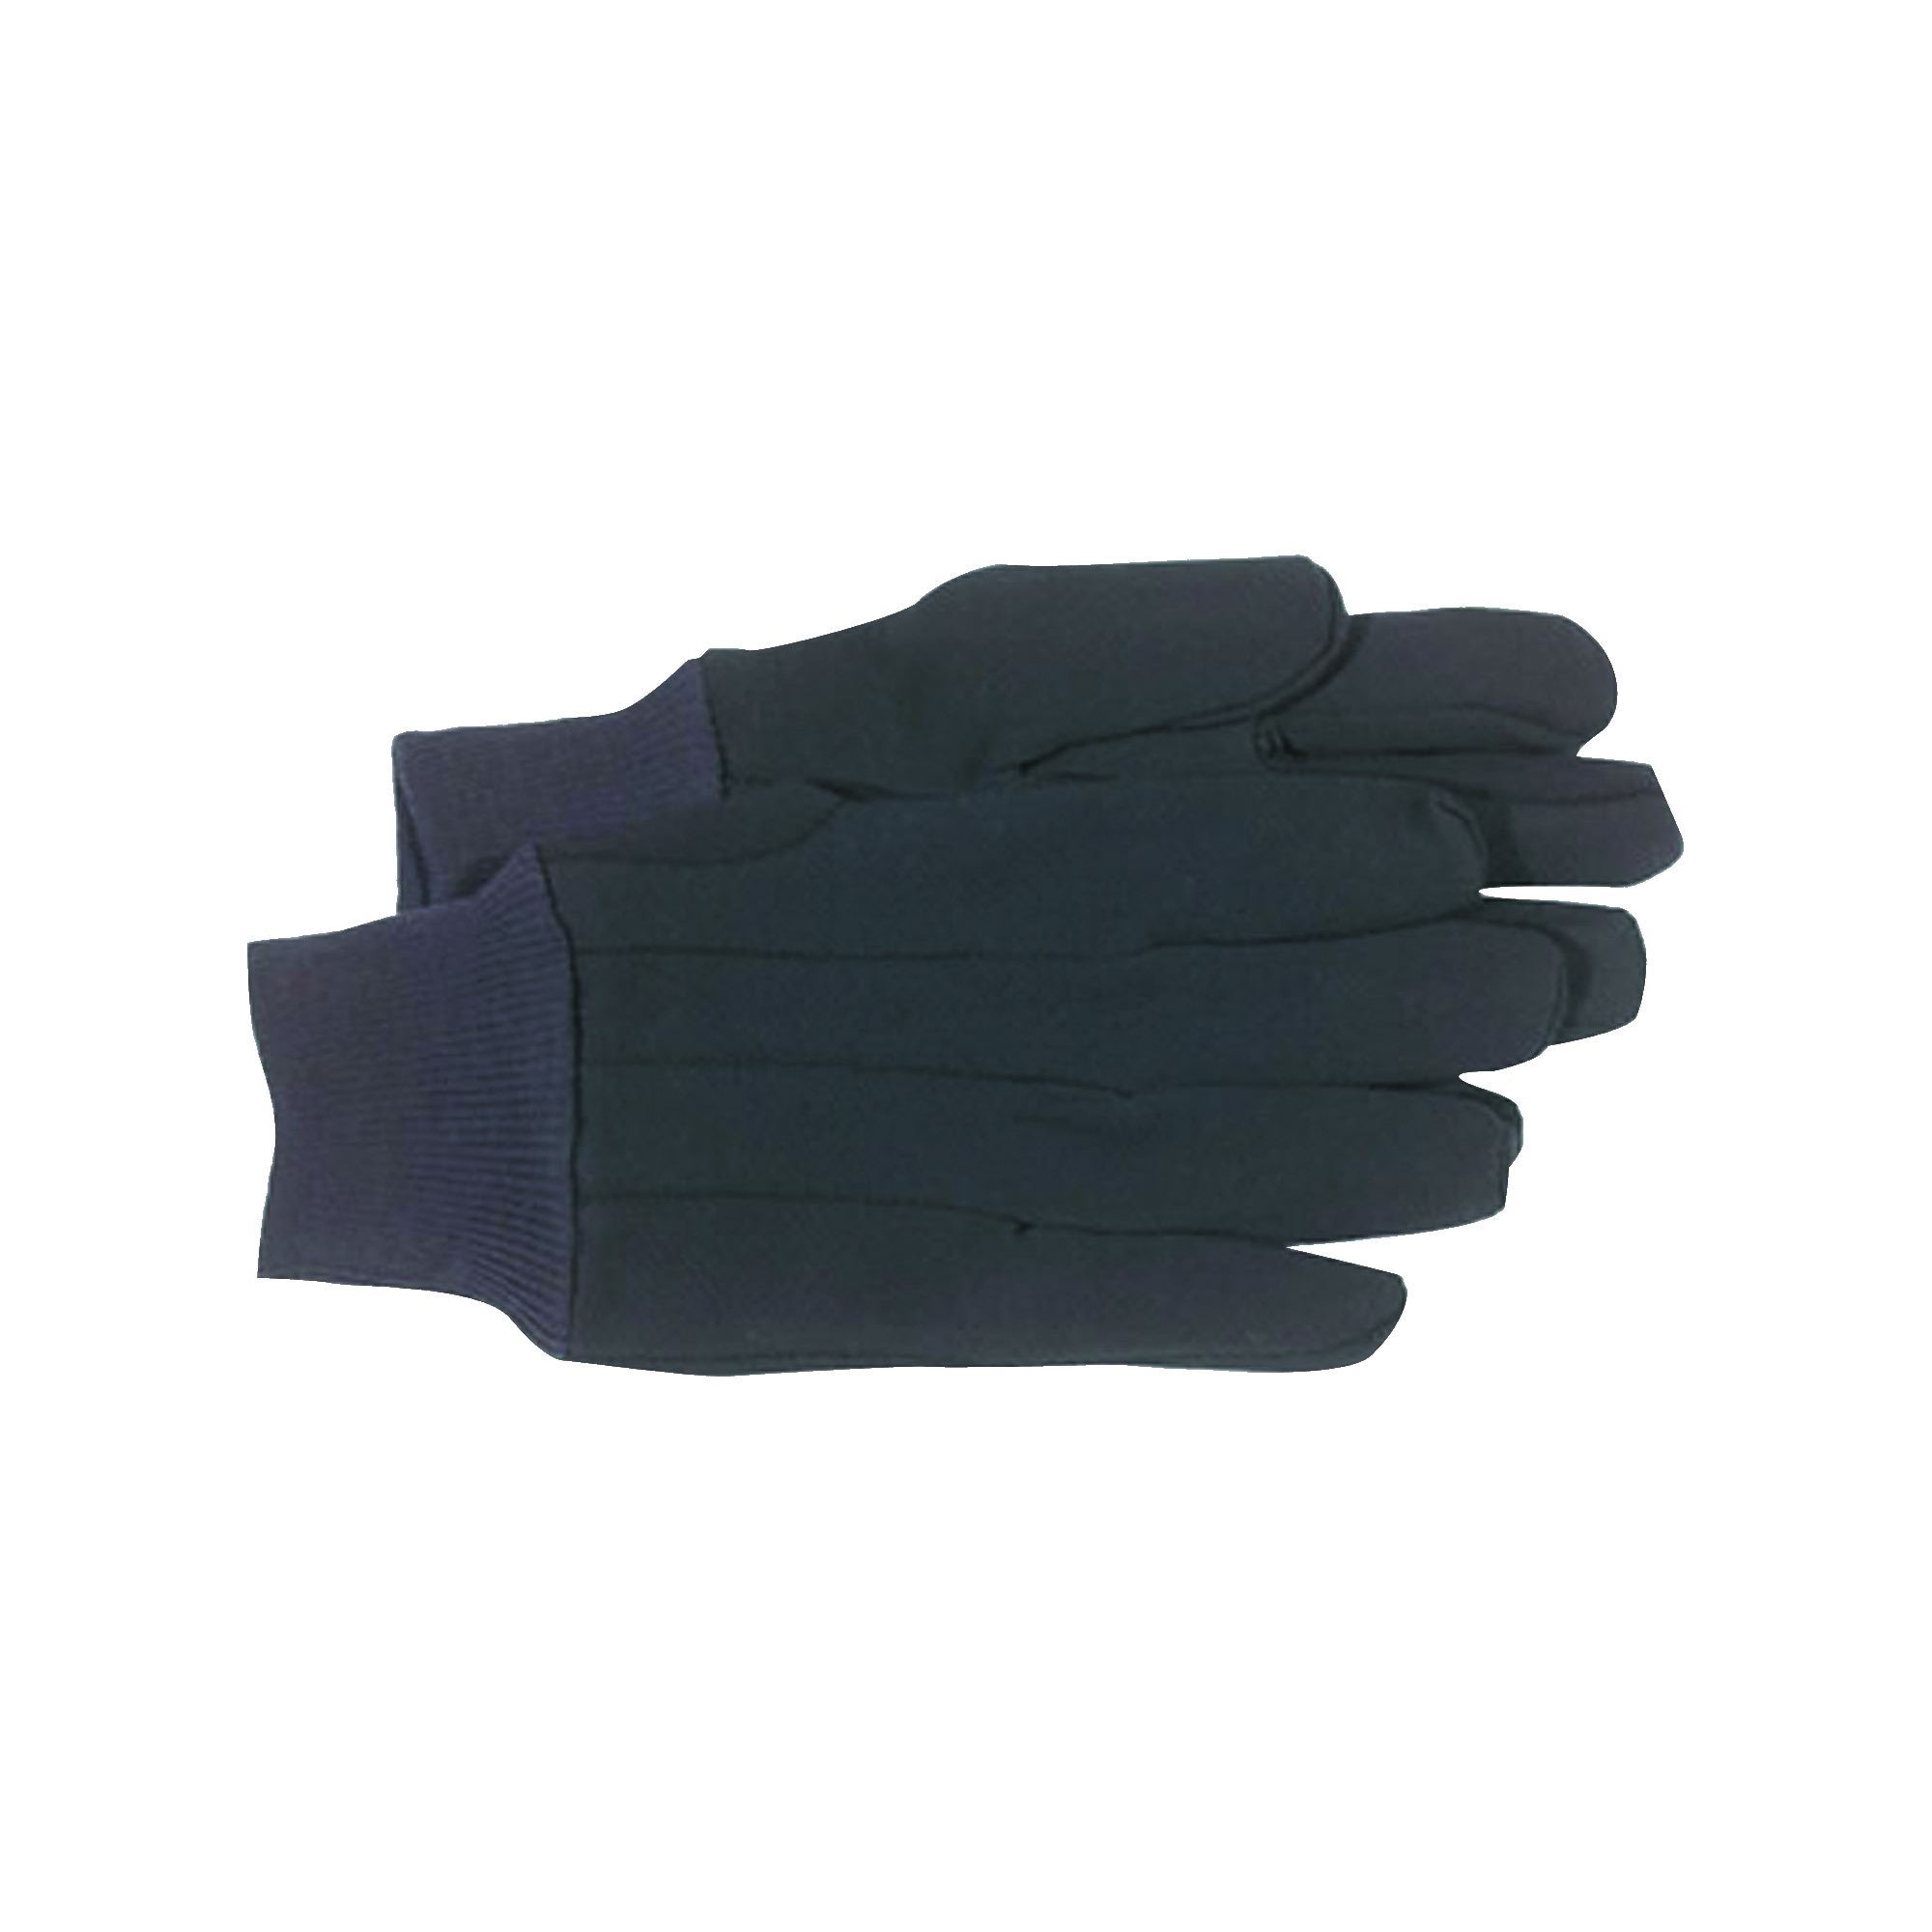 Picture of BOSS KIT Classic Protective Gloves, Women's, L, Straight Thumb, Knit Wrist Cuff, Jersey, Brown